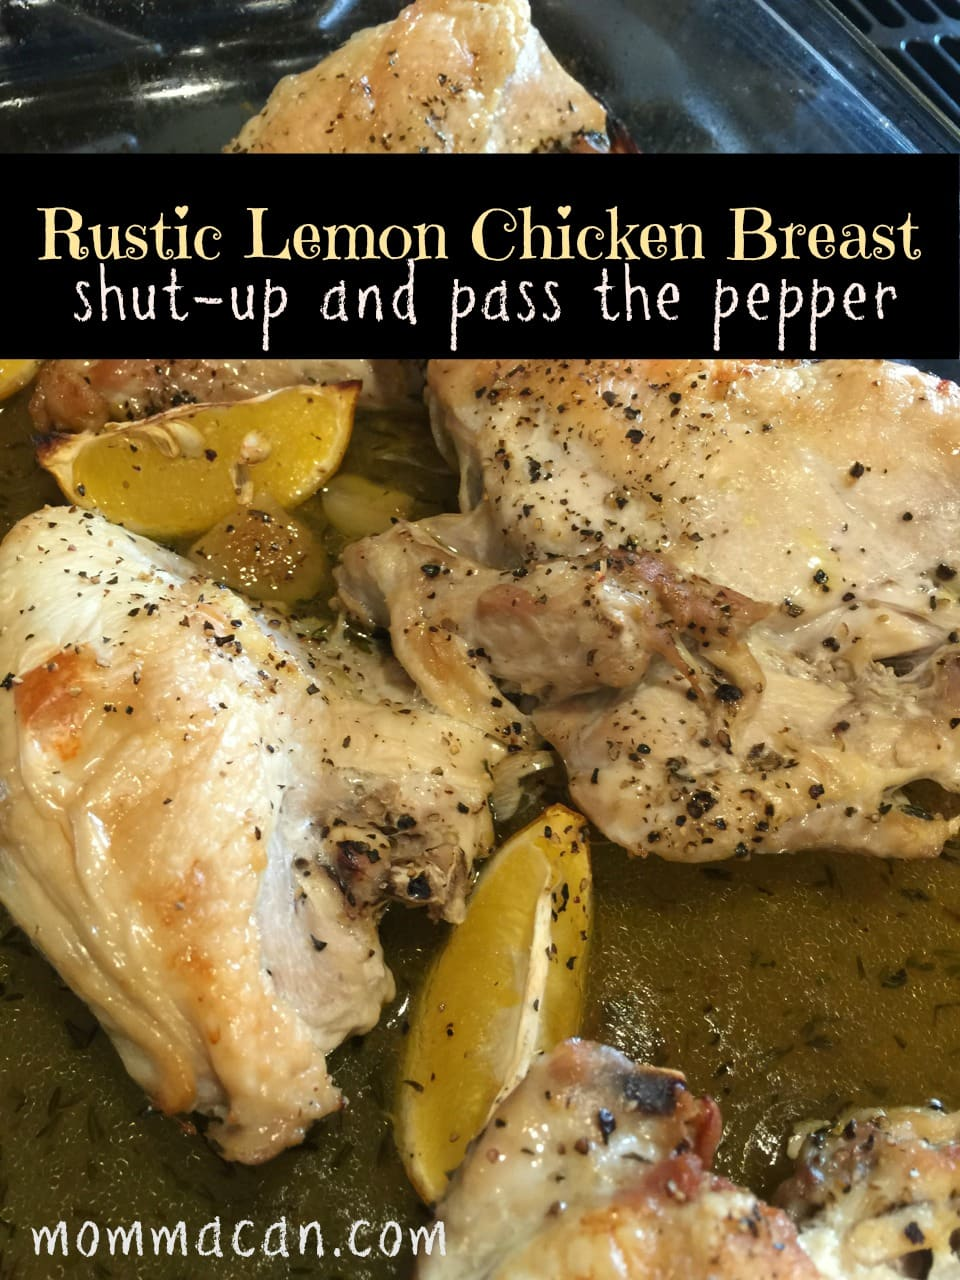 Rustic Lemon Chicken Breast- Shut- Up and Pass the Pepper